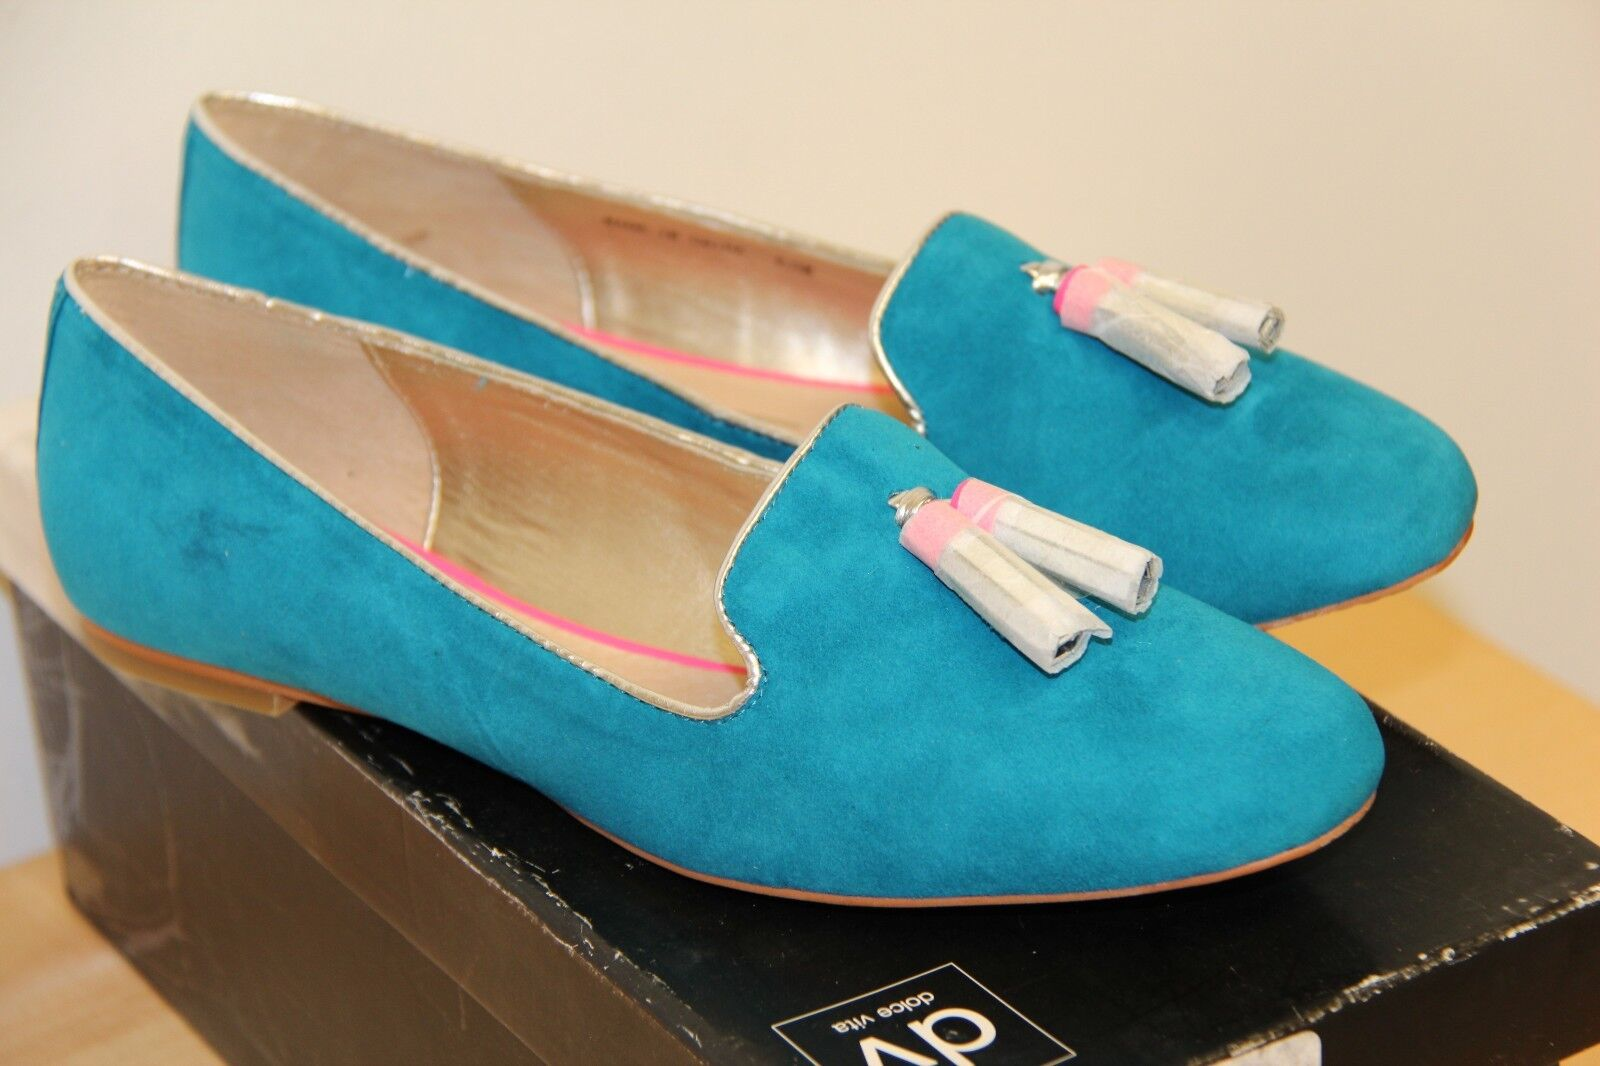 NIB Dolce Vita NALLA  Suede Oxfords Loafers Flat Schuhes Sz 8.5 Teal